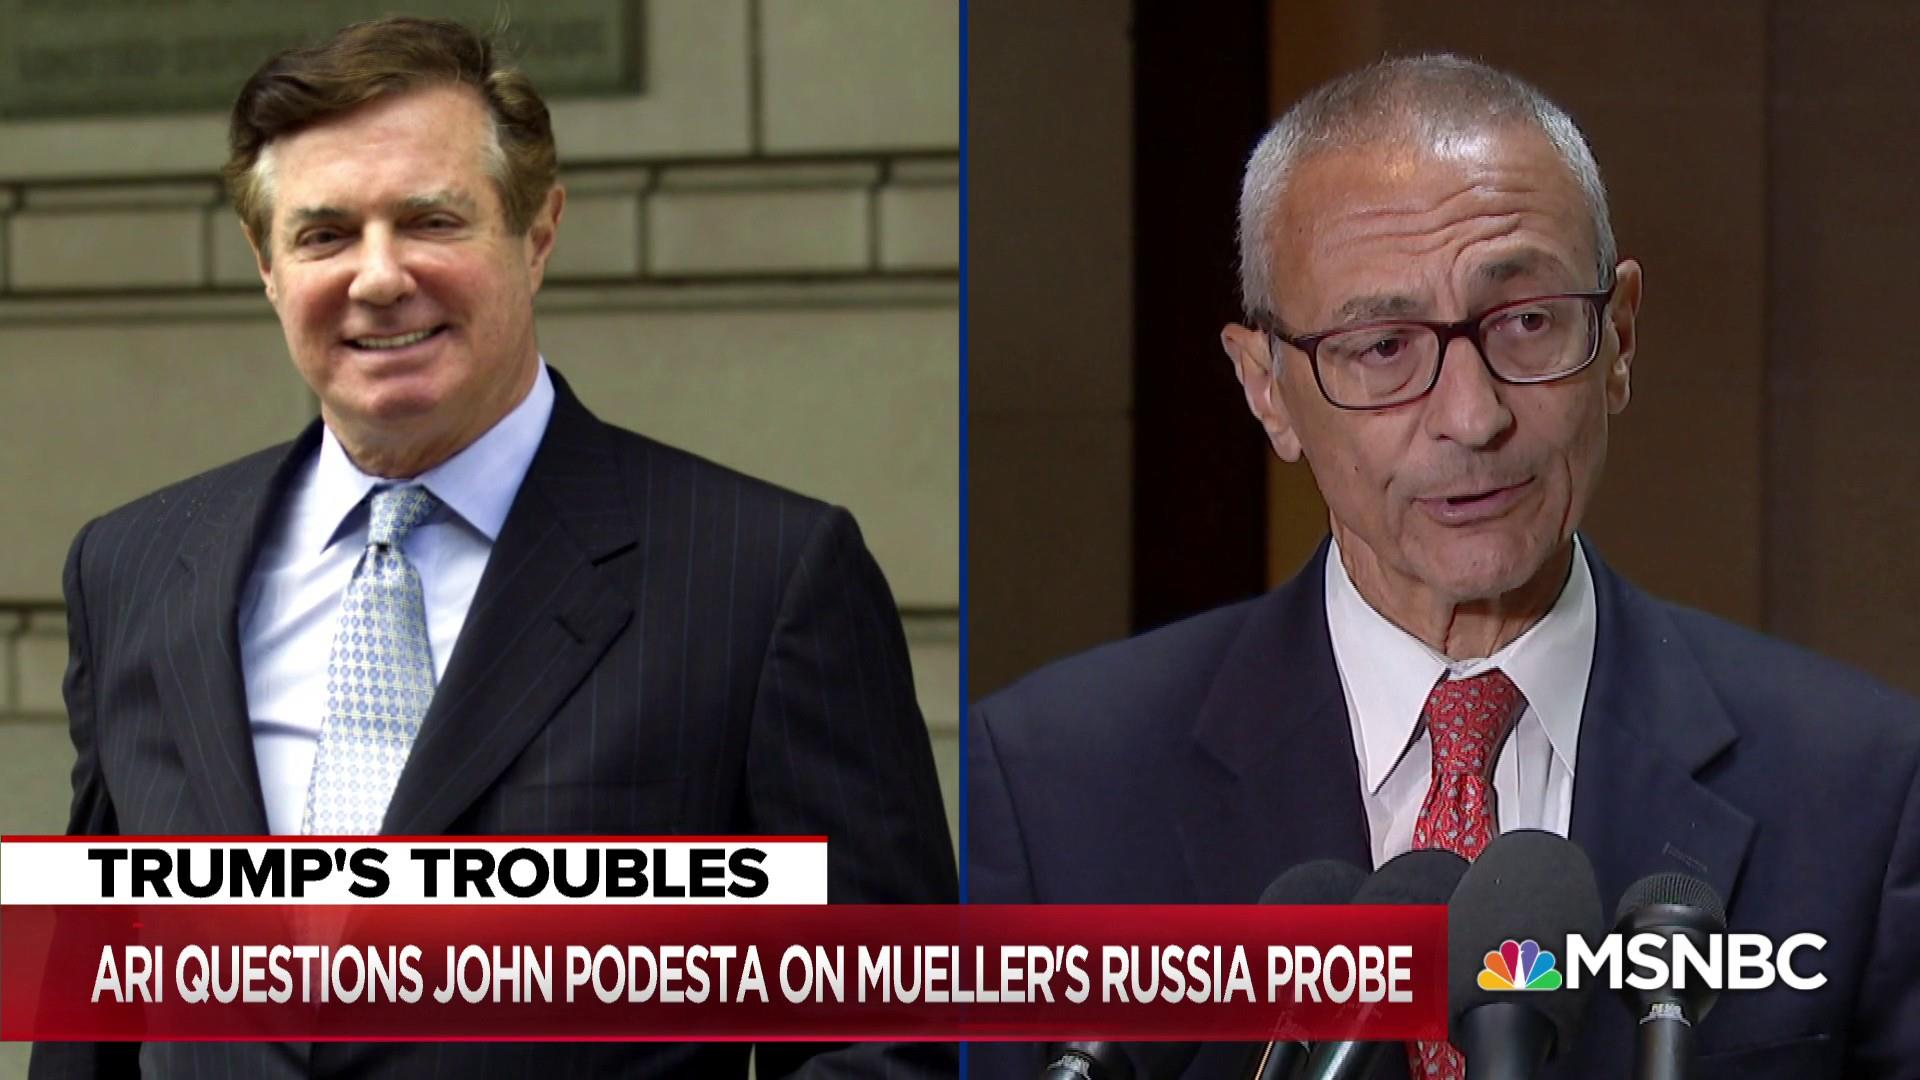 John Podesta: 'Rather be in this seat' than Paul Manafort's